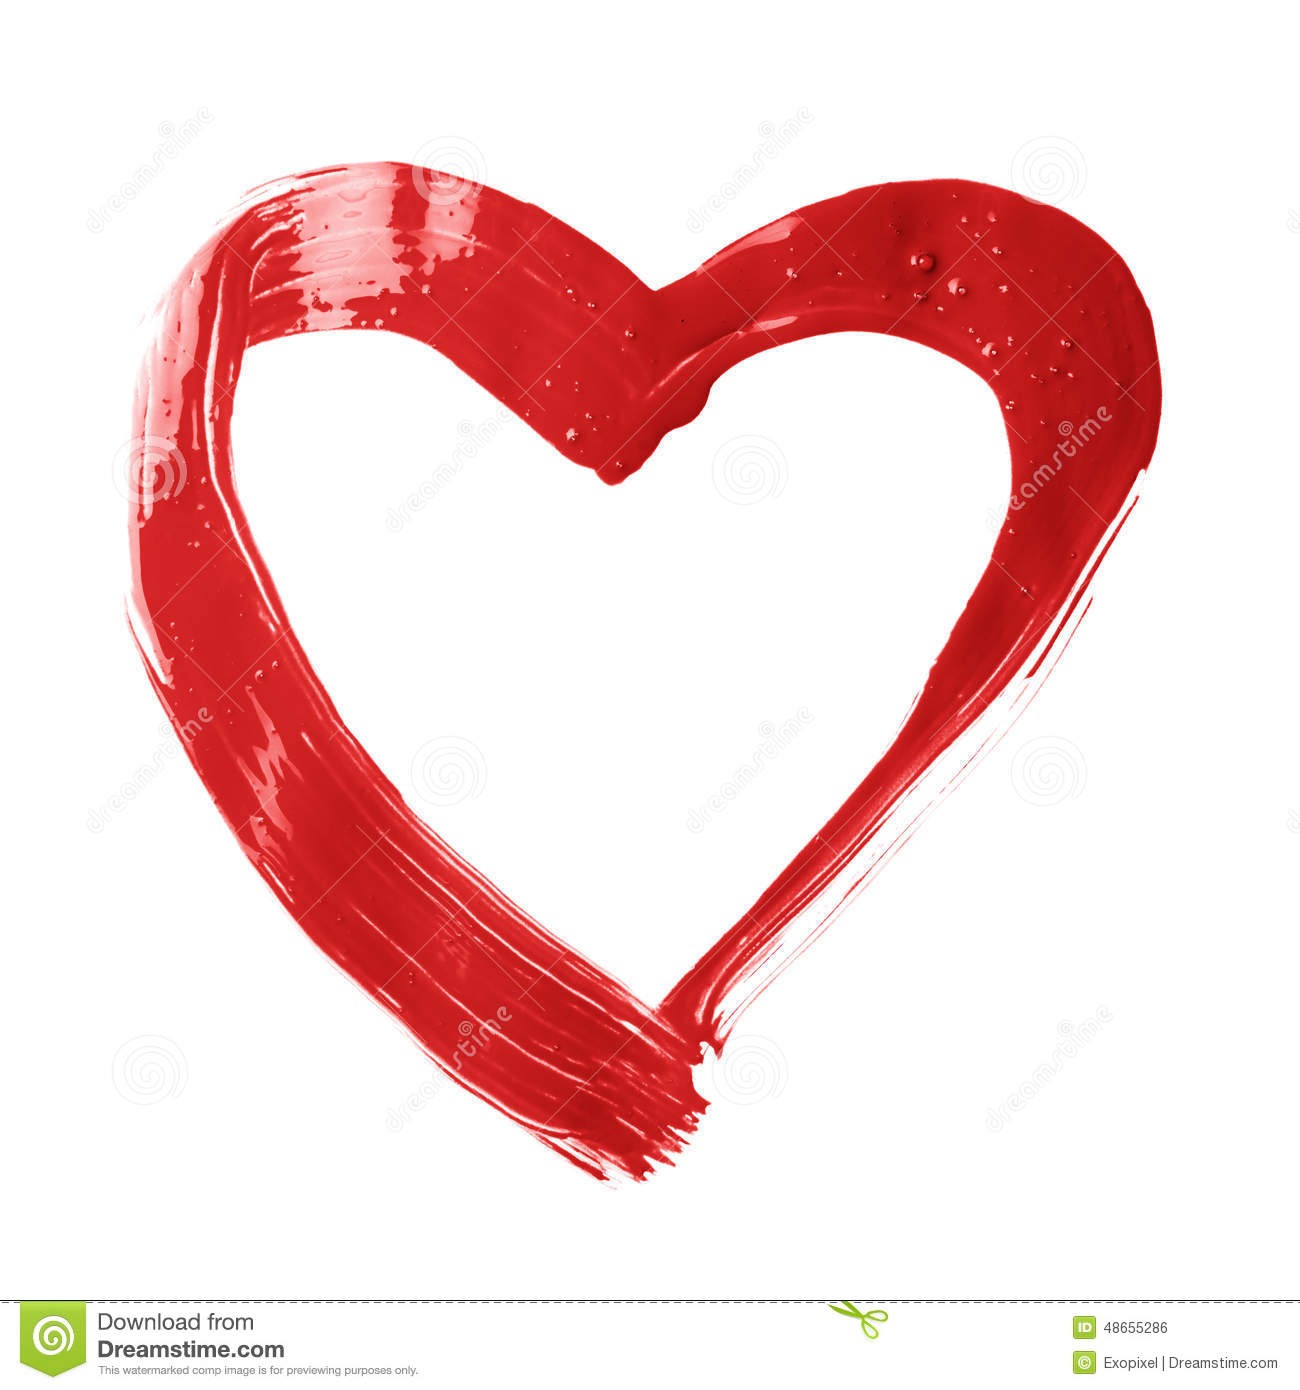 Brush clipart heart. Stroke pencil and in